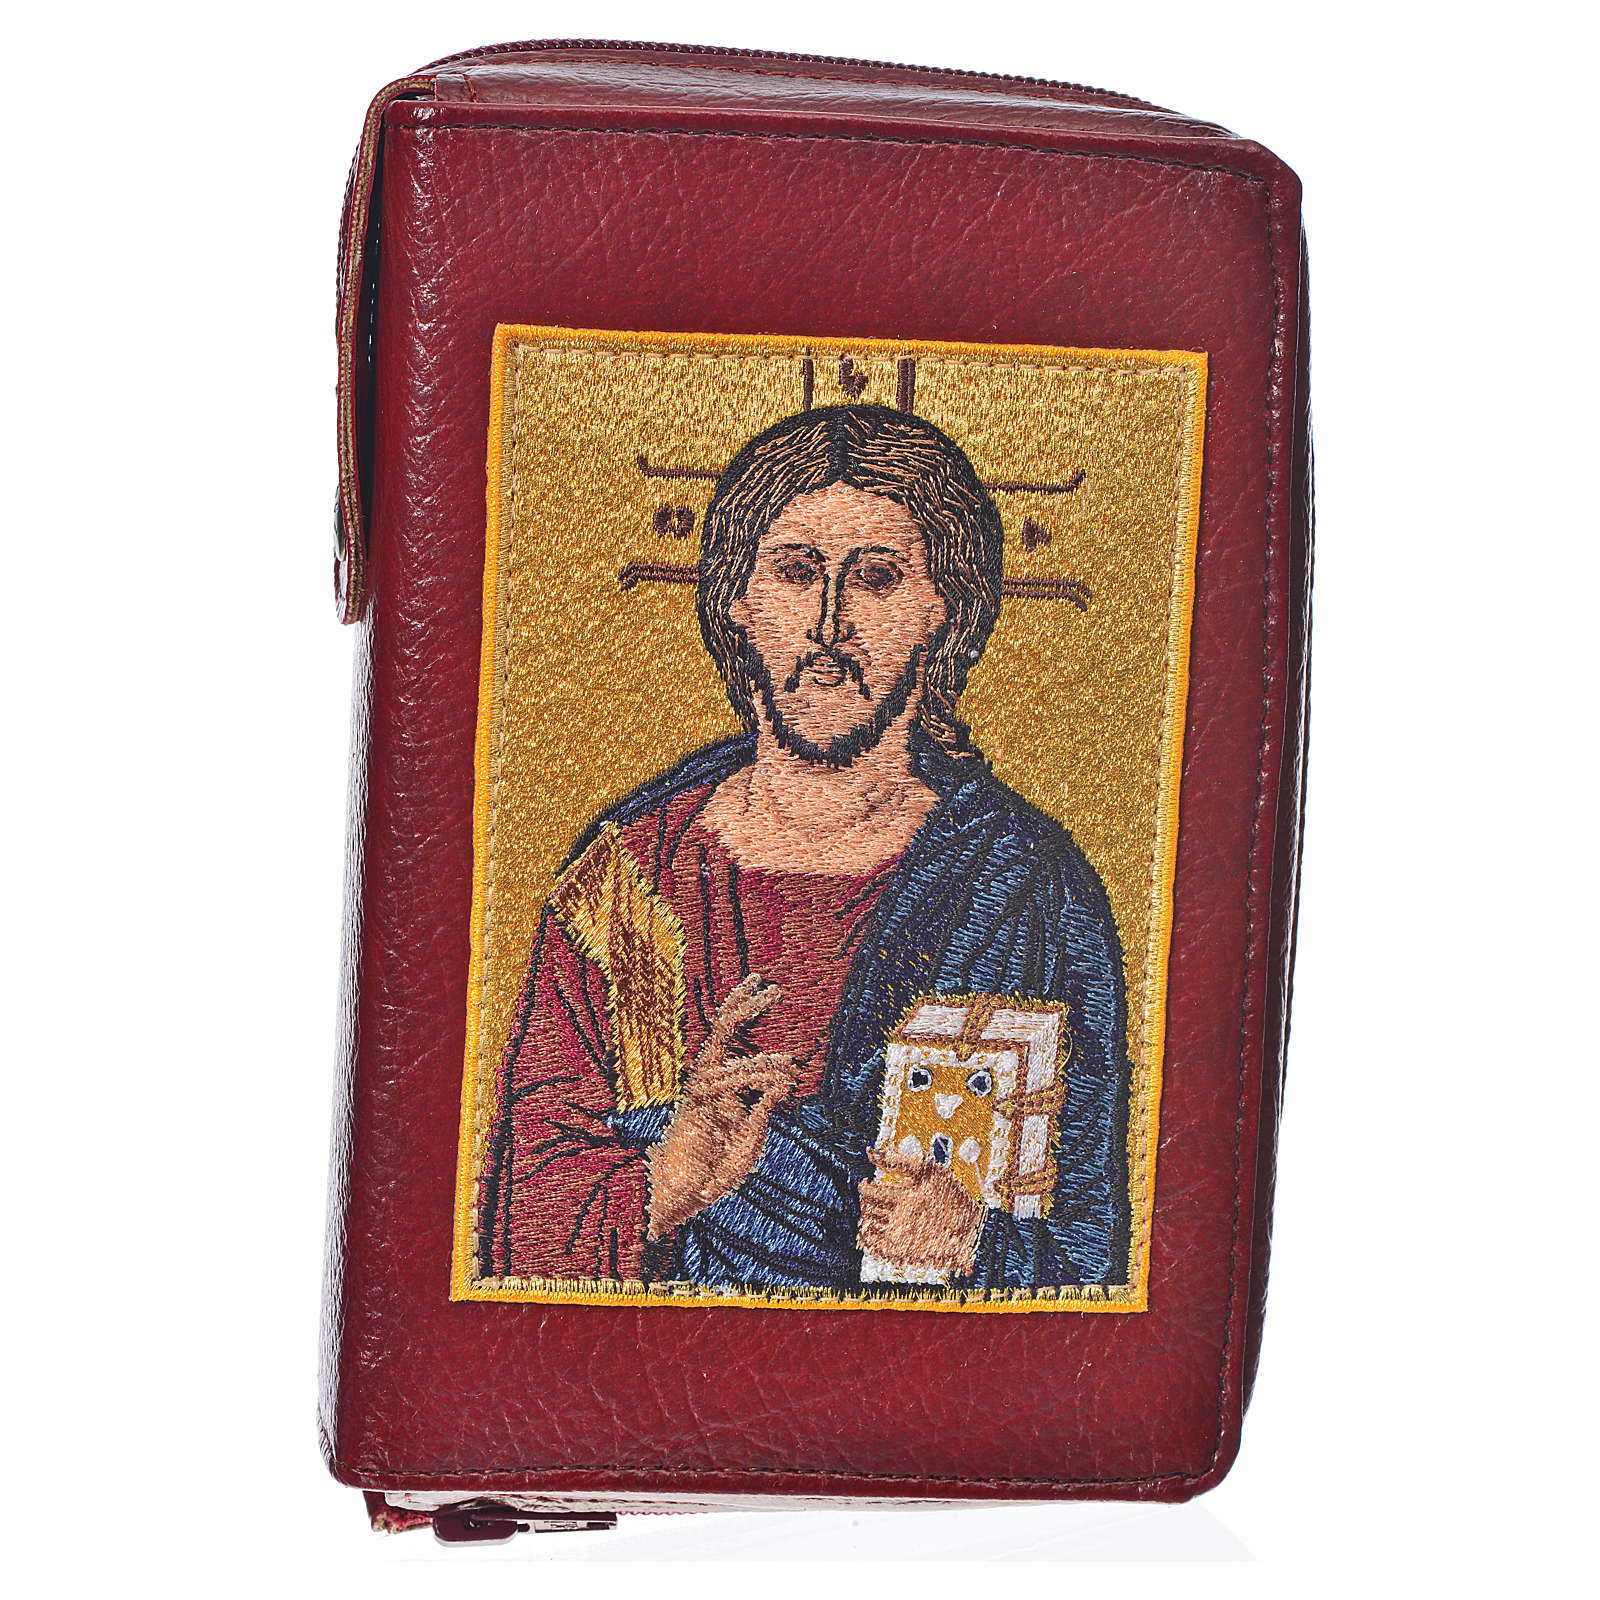 Ordinary Time III cover, burgundy bonded leather with image of the Christ Pantocrator 4